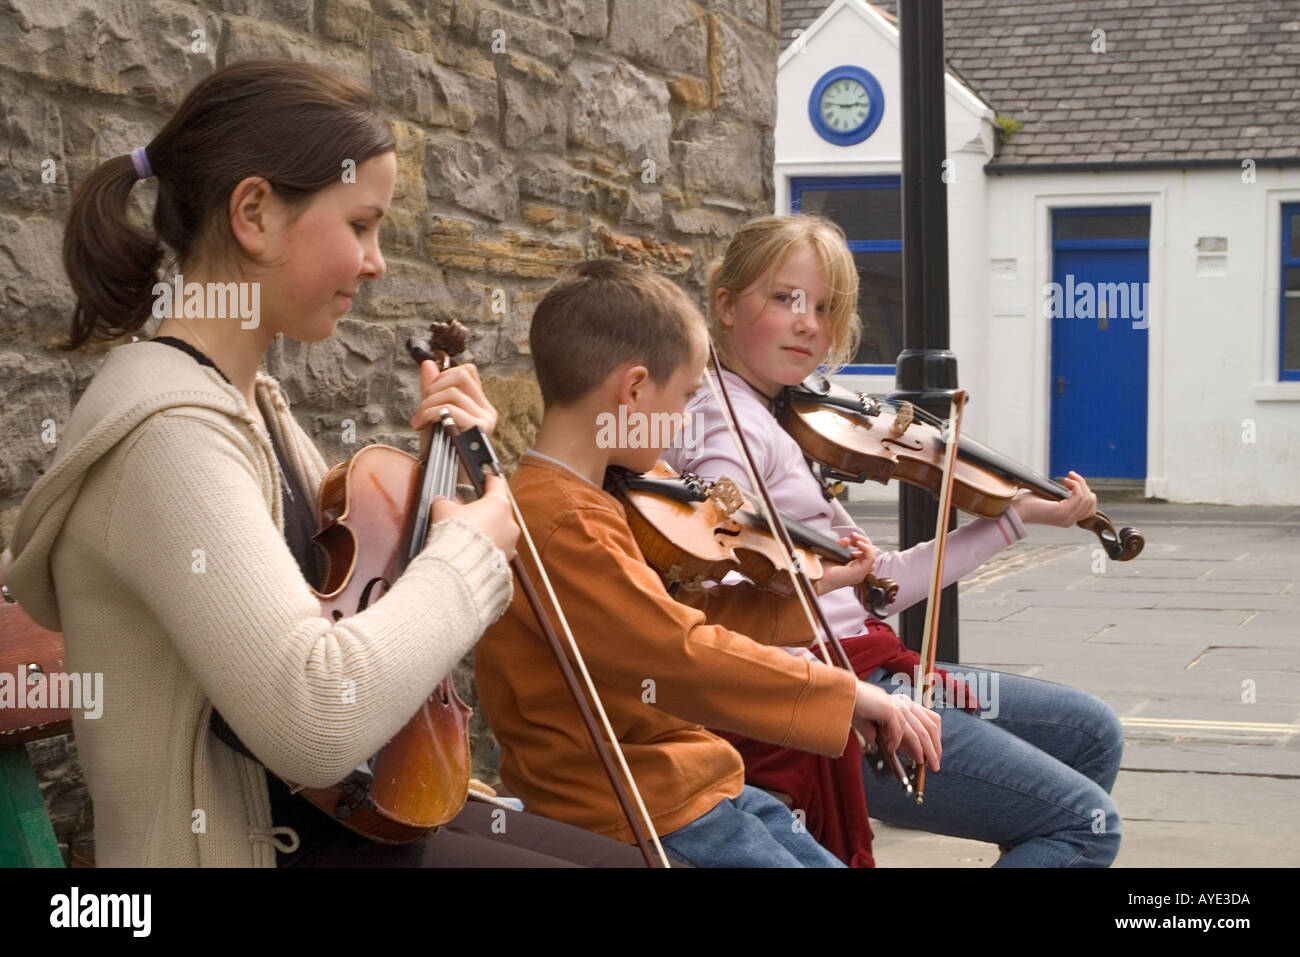 dh Orkney Folk Festival STROMNESS ORKNEY girls and boy playing fiddles ate Orkney festival event scotland children Stock Photo